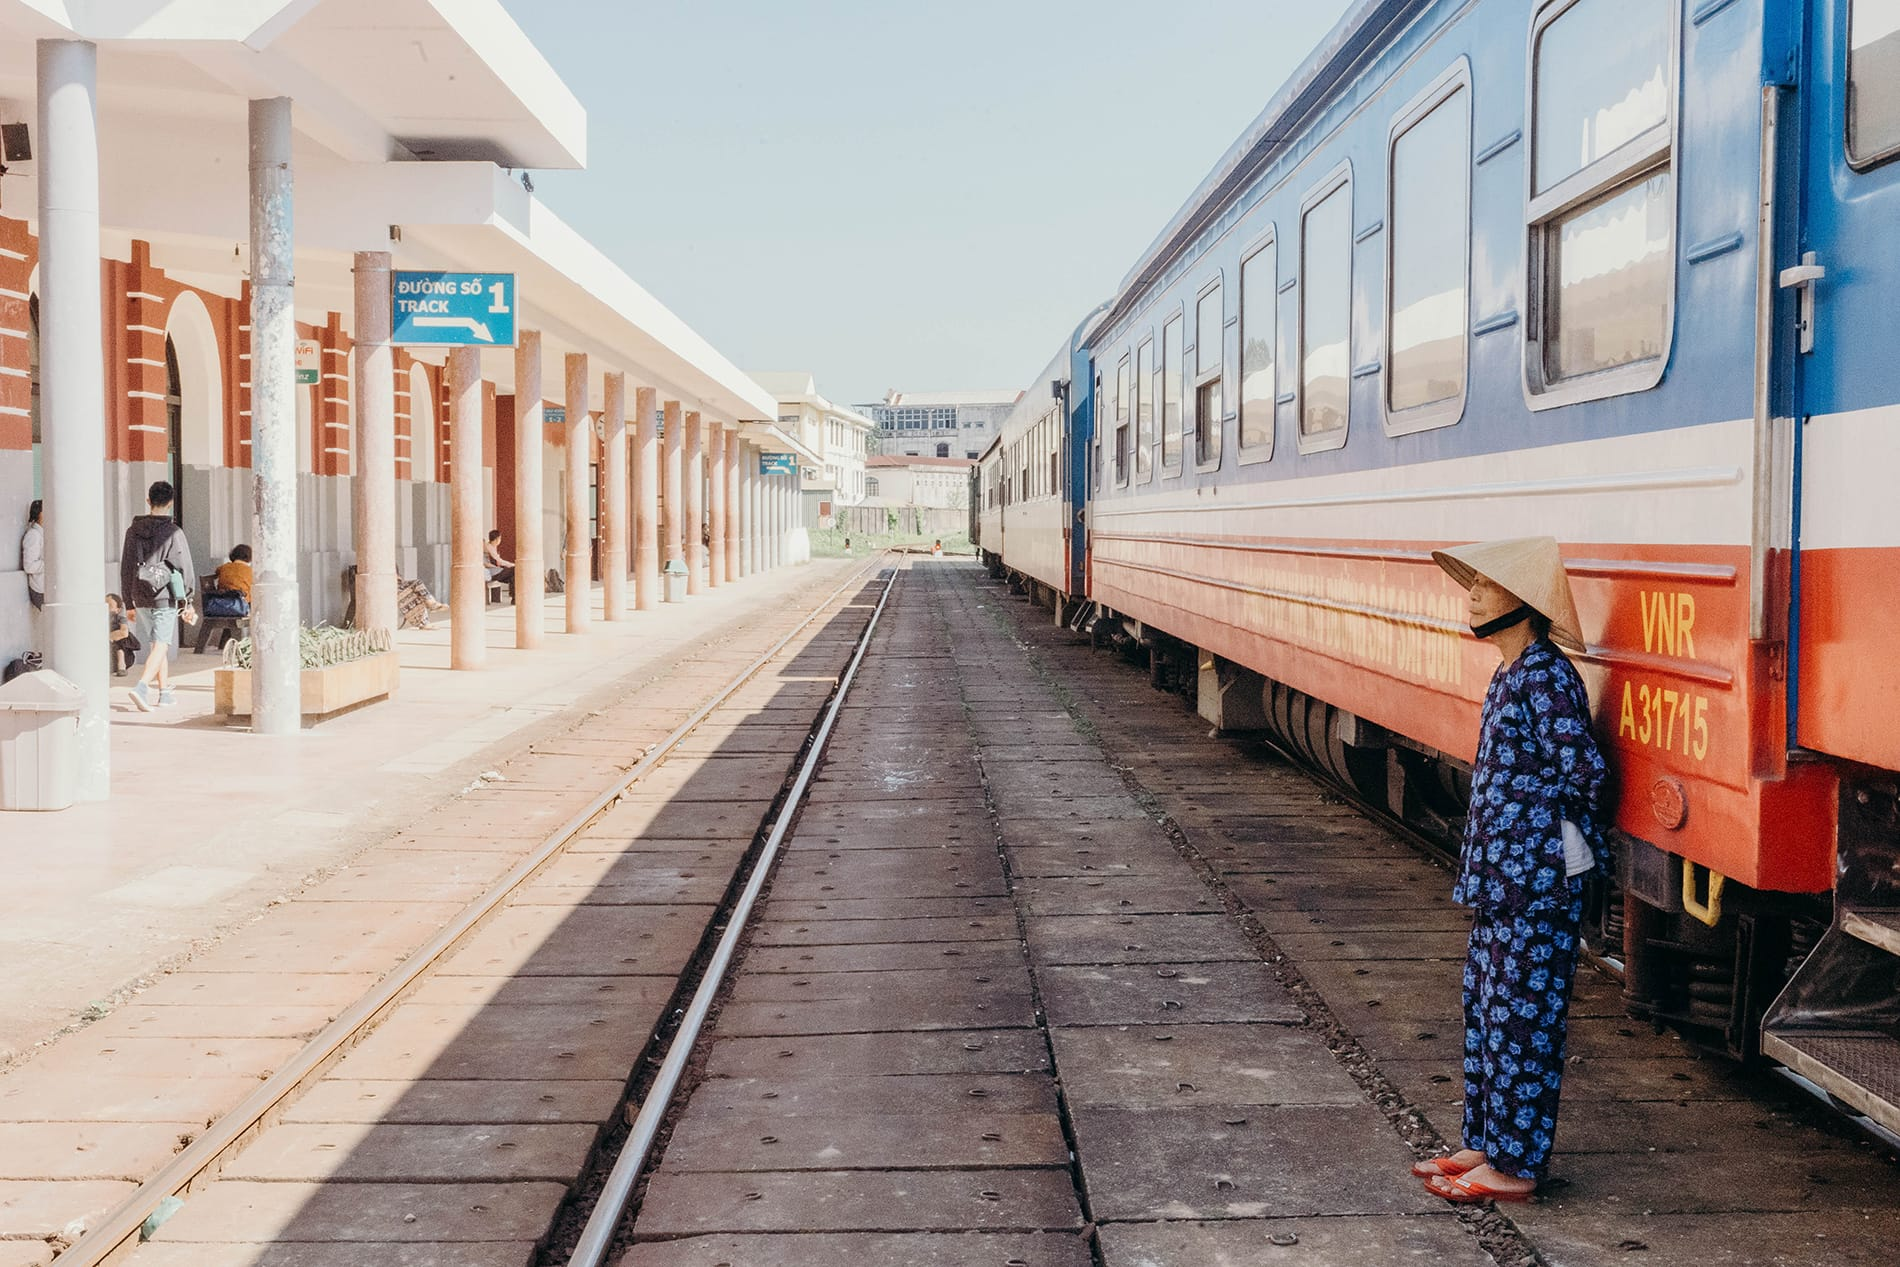 a vietnamese woman stands behind the train